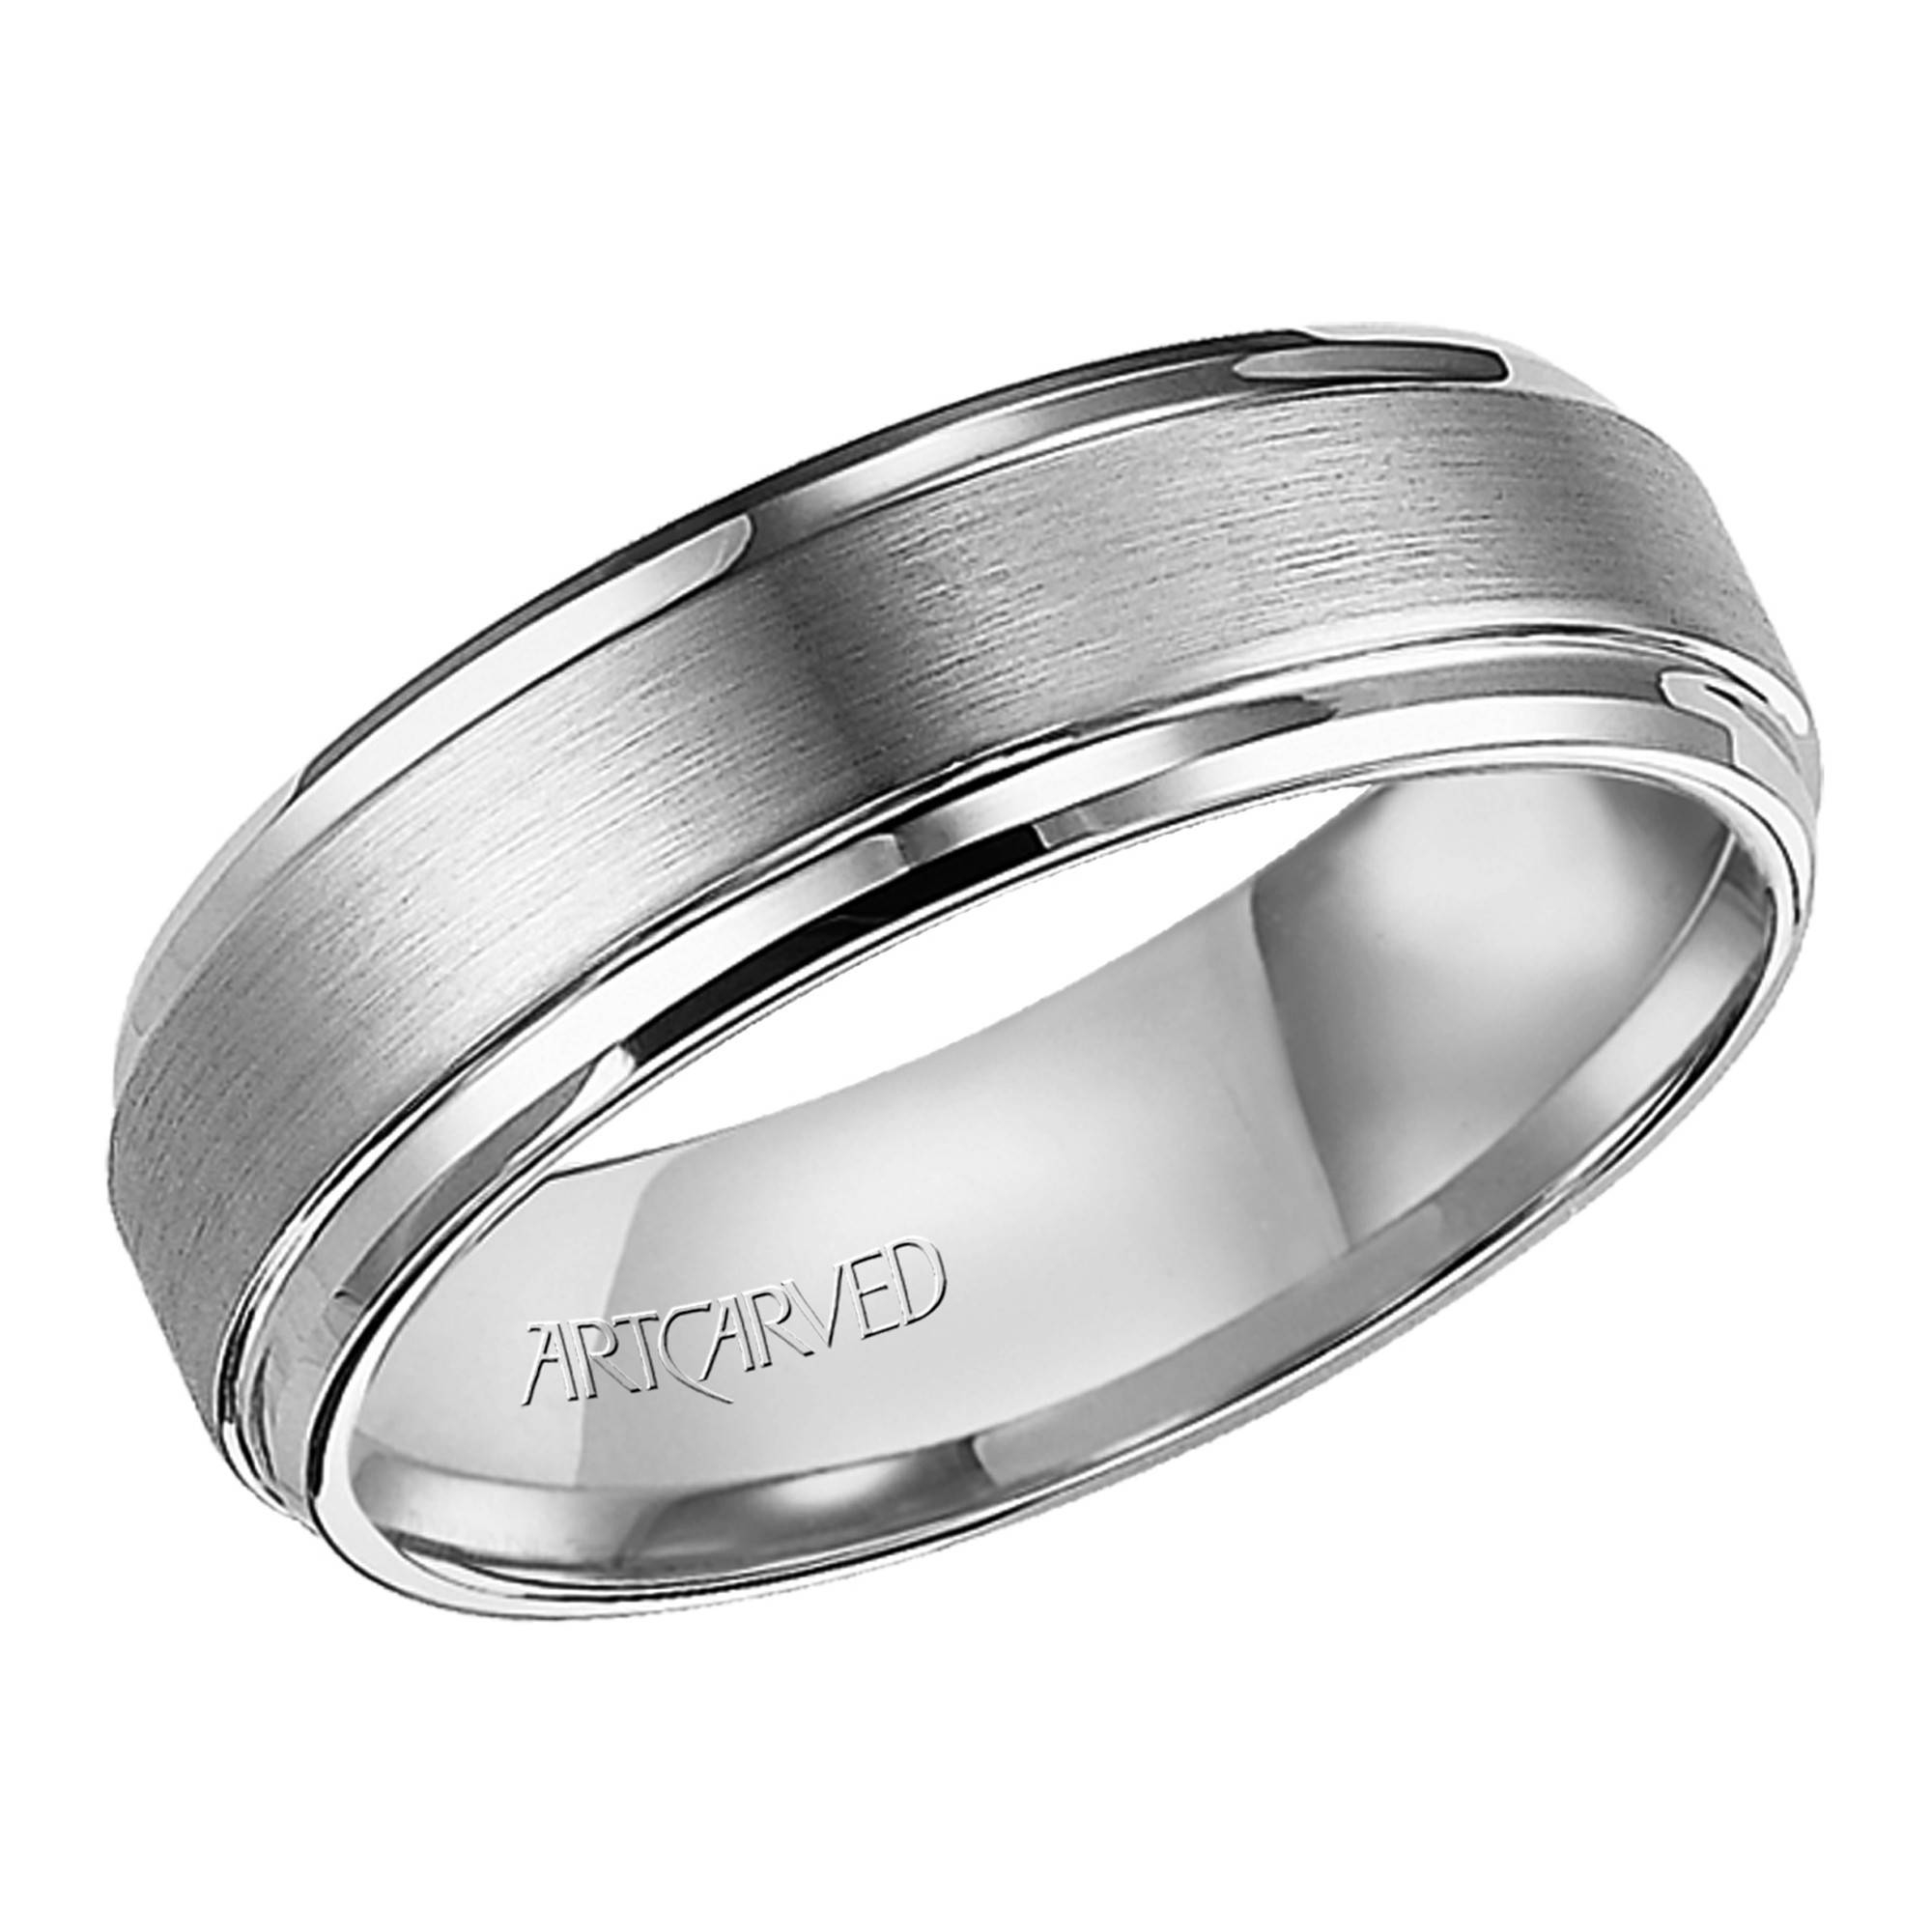 Artcarved Mens Exquisite Carved Wedding Band In Tungsten Carbide (7mm) In 7mm Titanium Wedding Bands (Gallery 7 of 15)